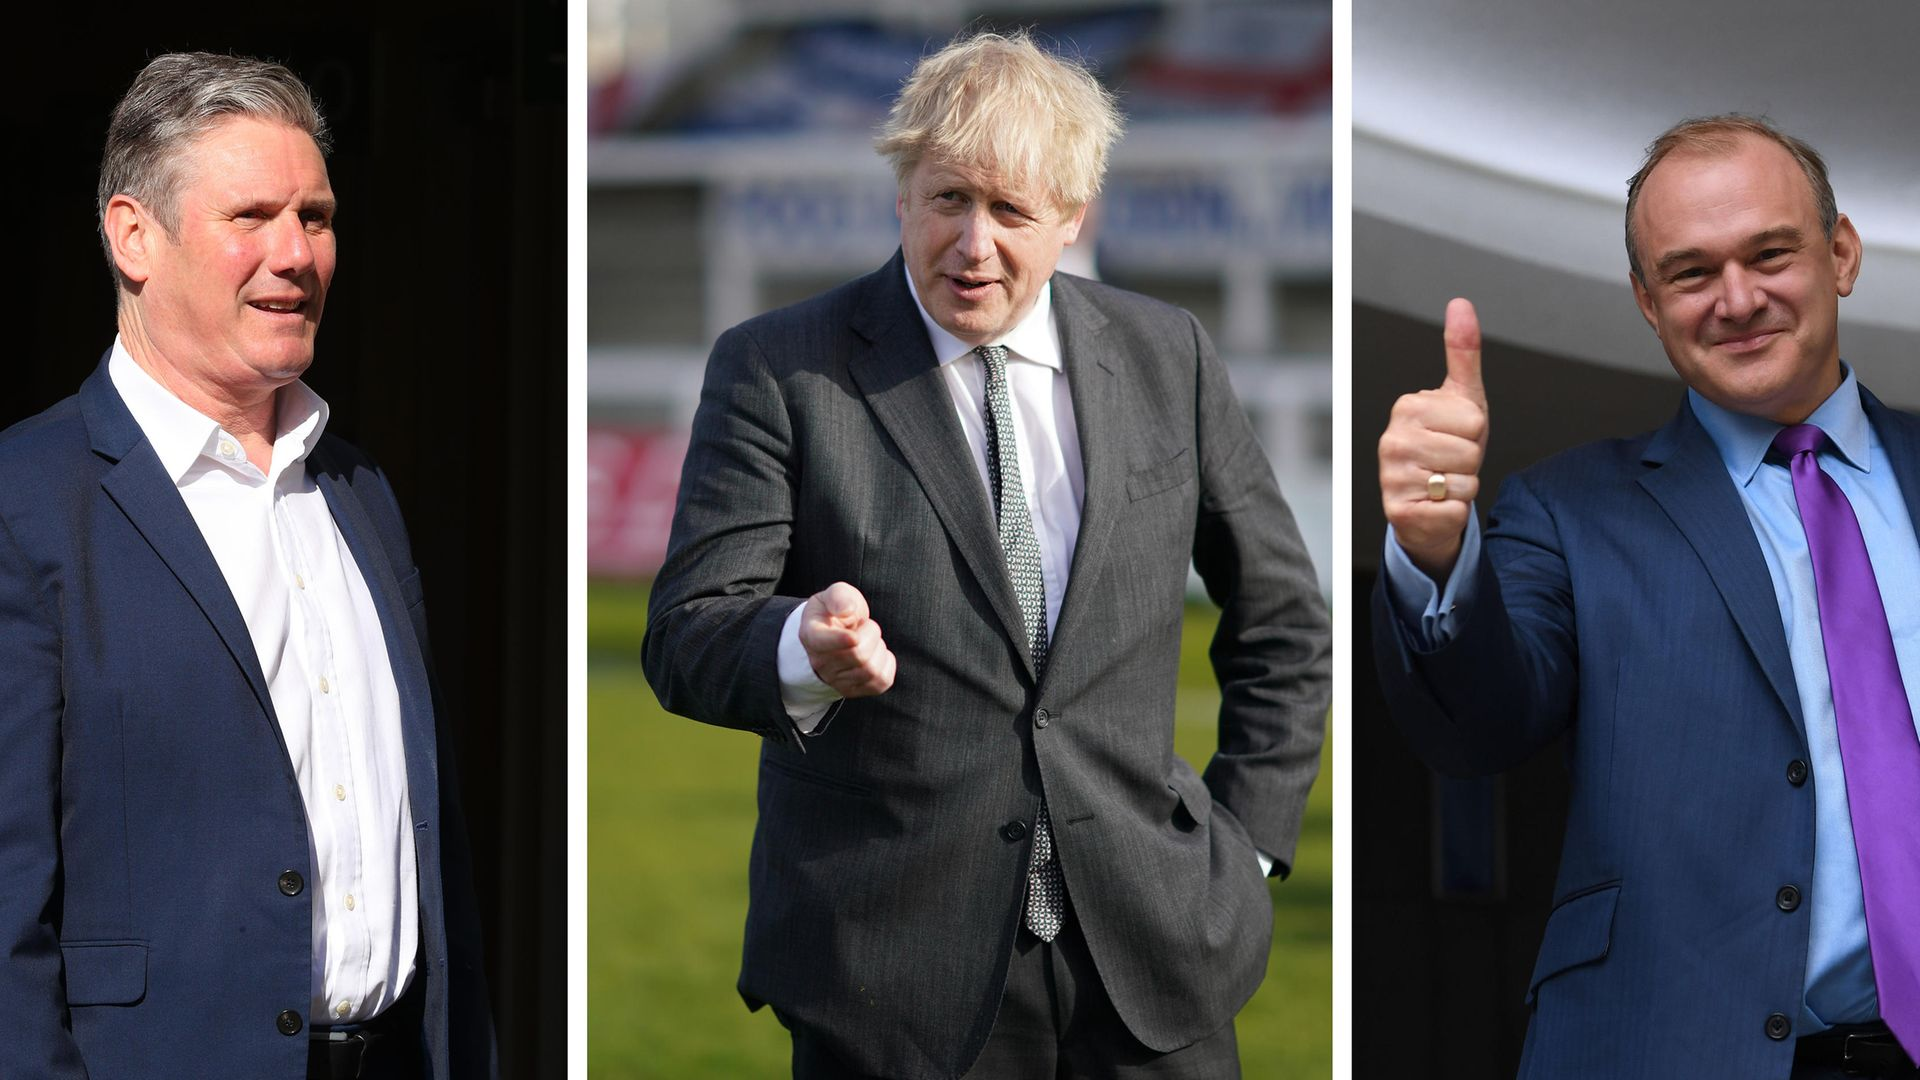 Labour leader Sir Keir Starmer, Prime Minister and Conservative leader Boris Johnson and Liberal Democrat leader Sir Ed Davey. Local elections are taking place across England, as well as parliamentary elections in Scotland and Wales, on Thursday - Credit: PA